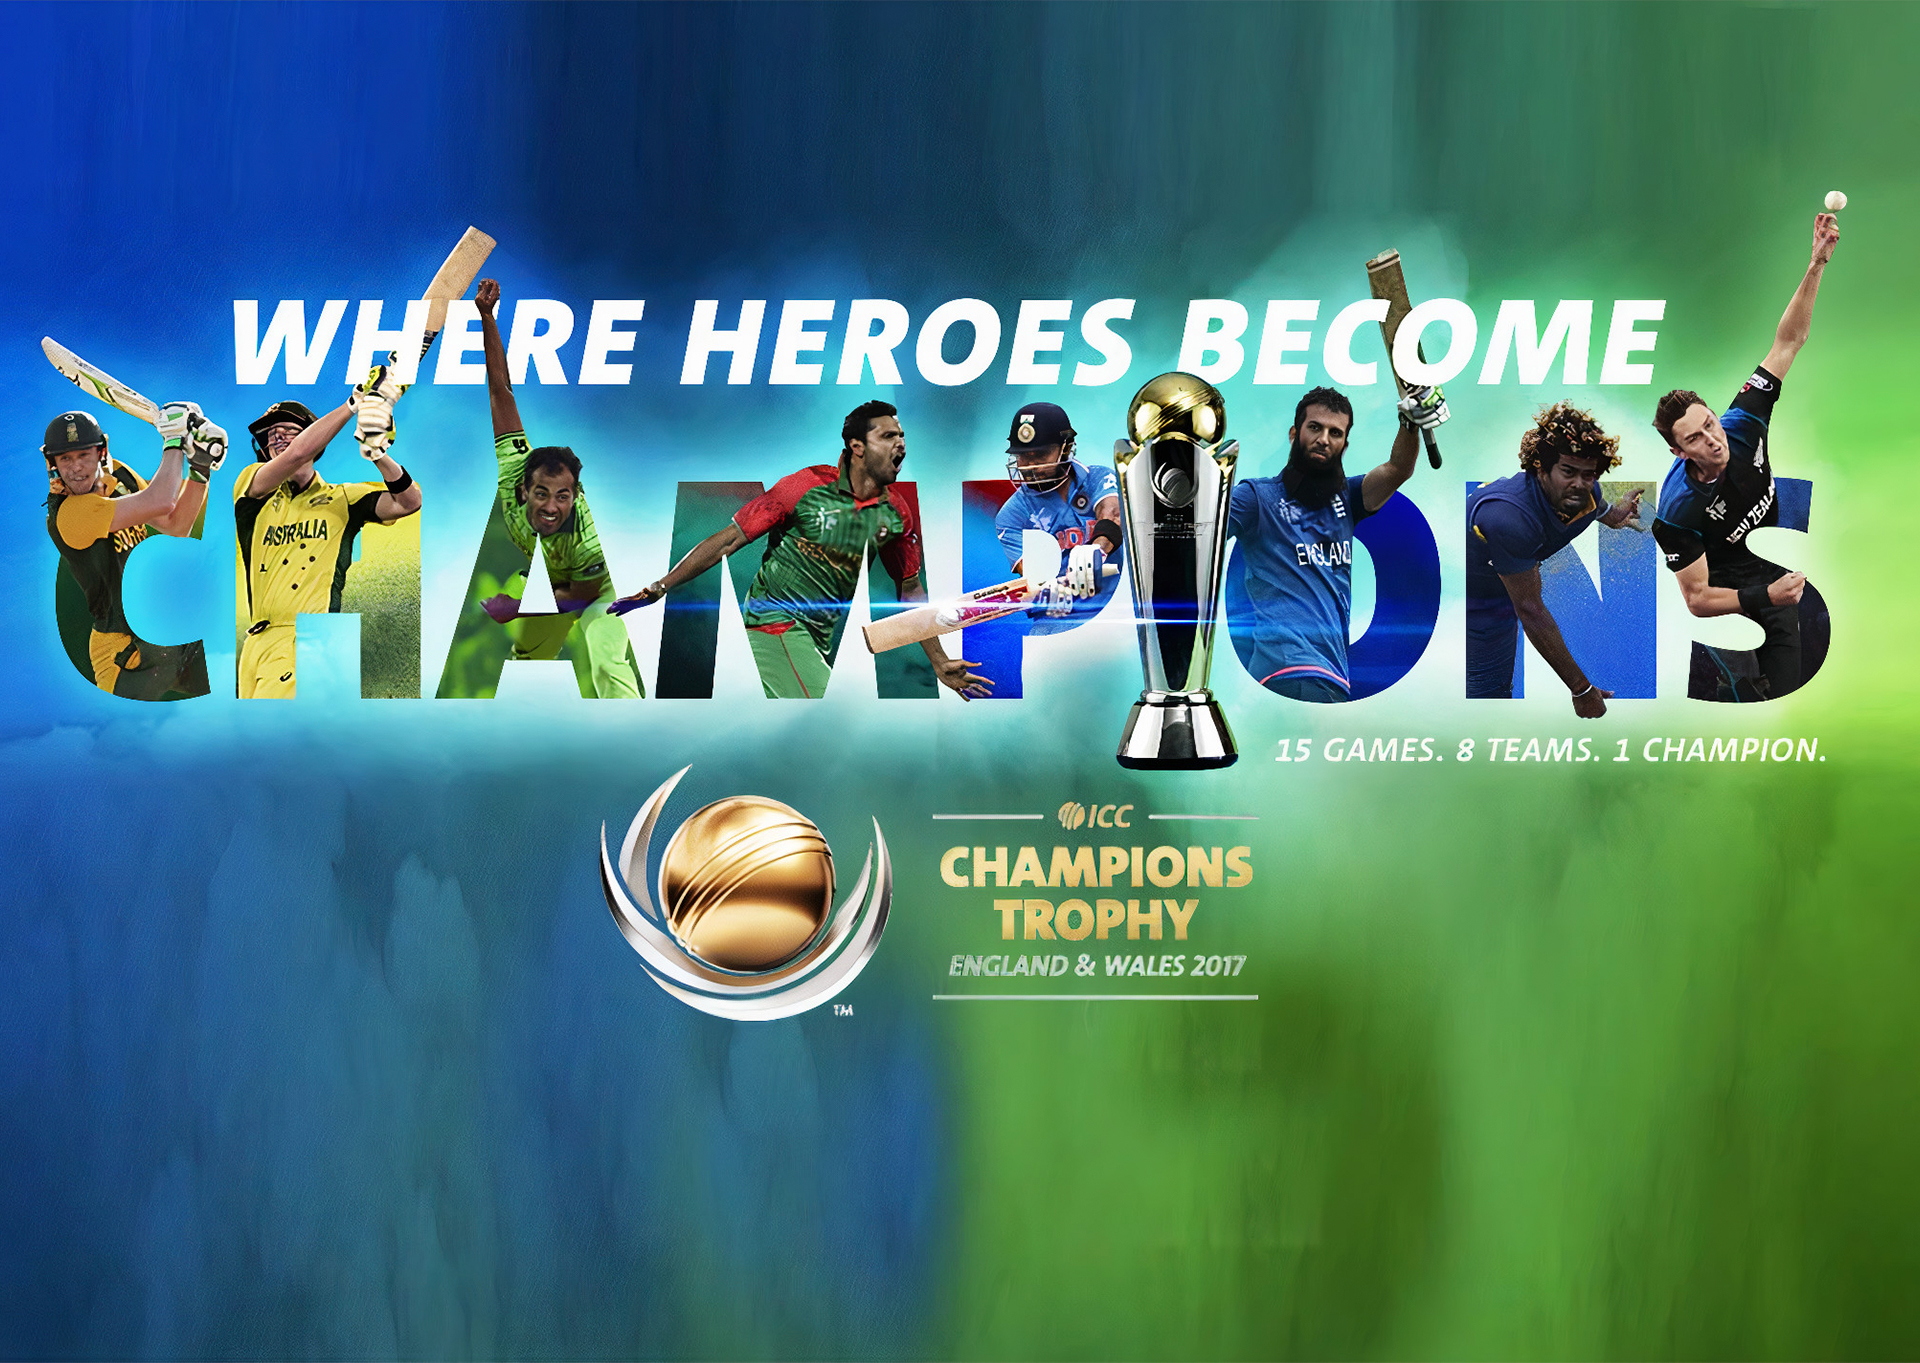 You can place bets on ICC Champions Trophy after registering on the site